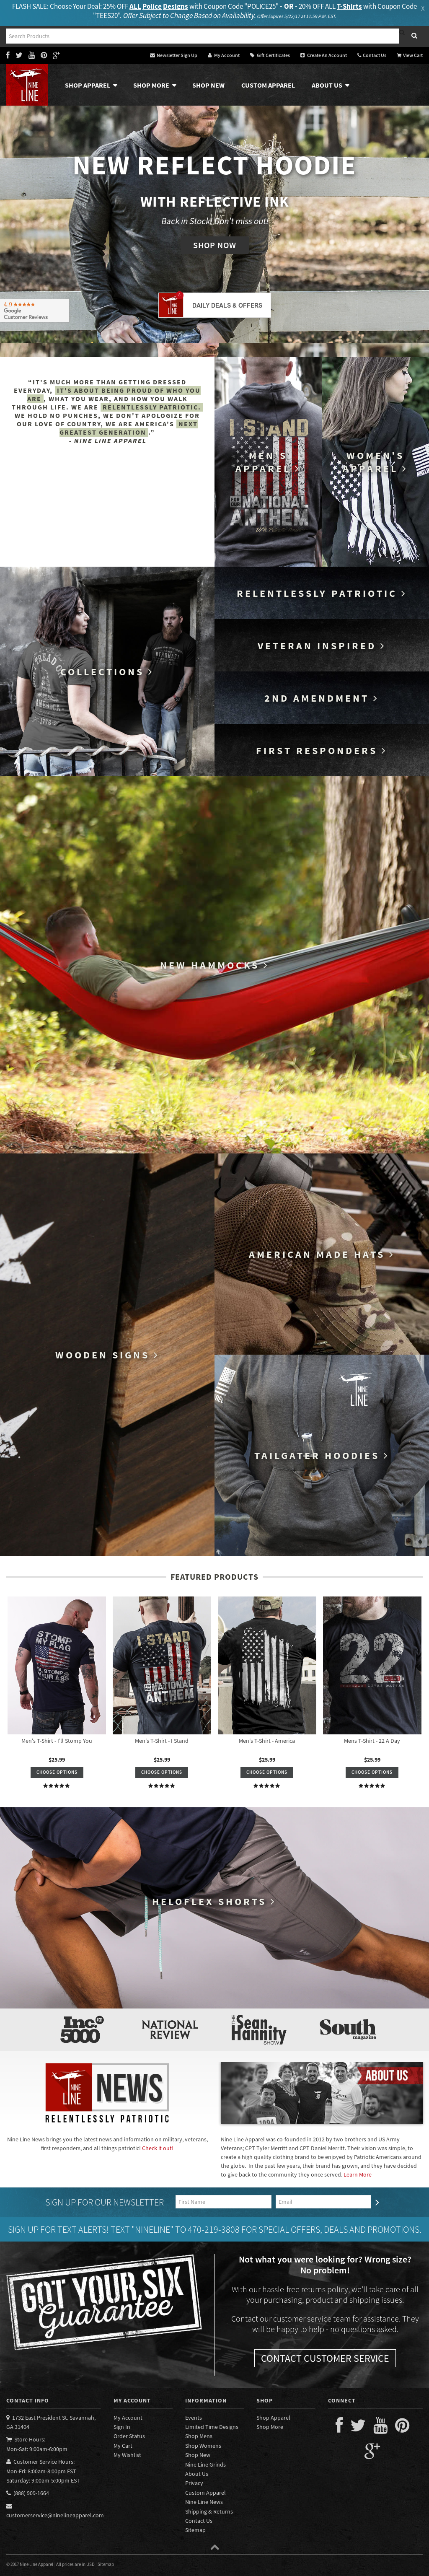 Nine Line Apparel Competitors, Revenue and Employees - Owler Company